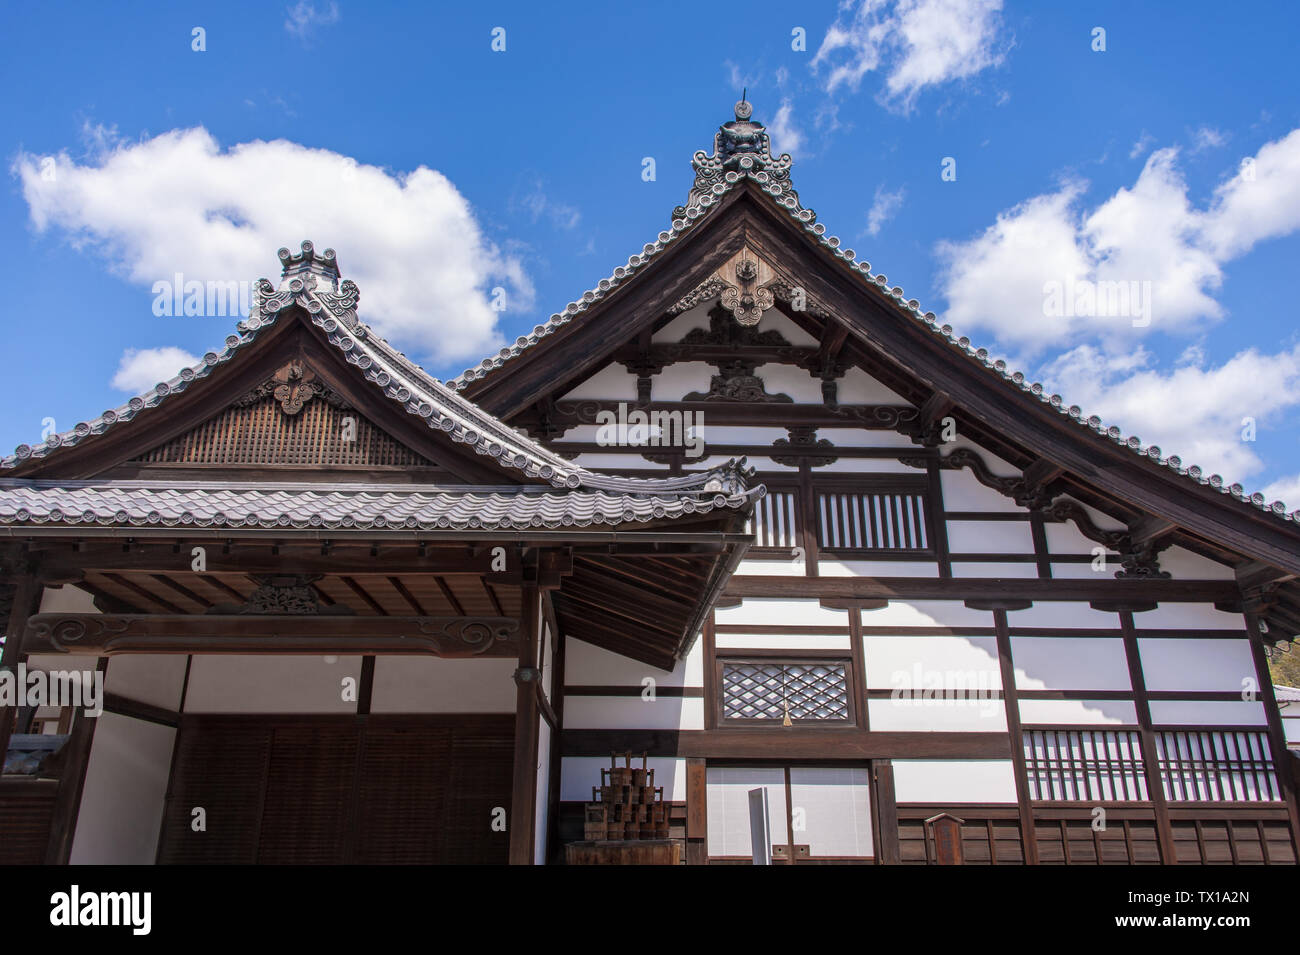 Traditional Japanese Roof Style High Resolution Stock Photography And Images Alamy